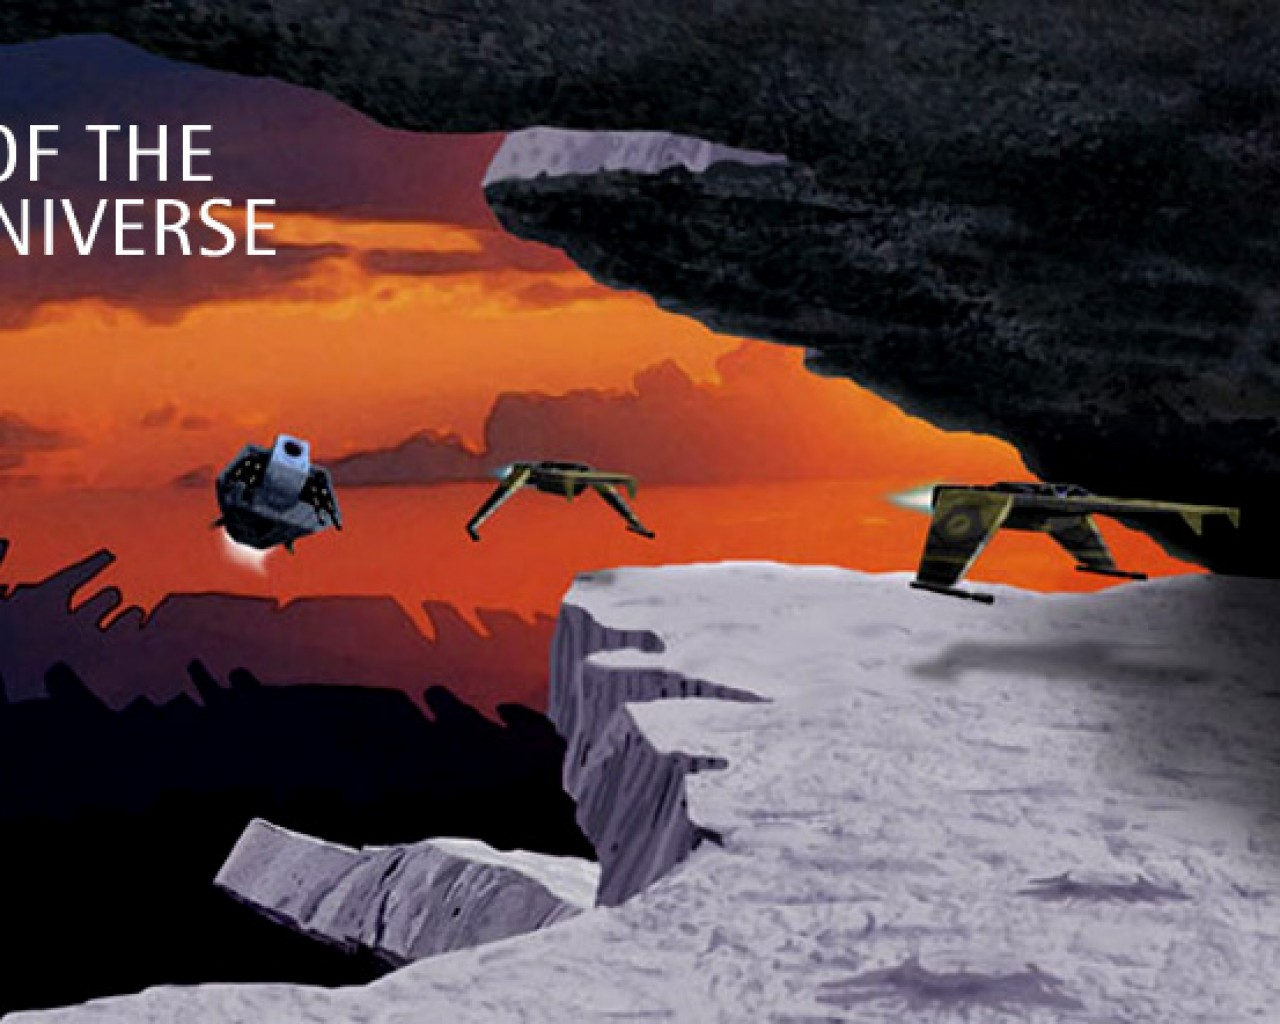 Poster Image for EDGE OF THE UNIVERSE